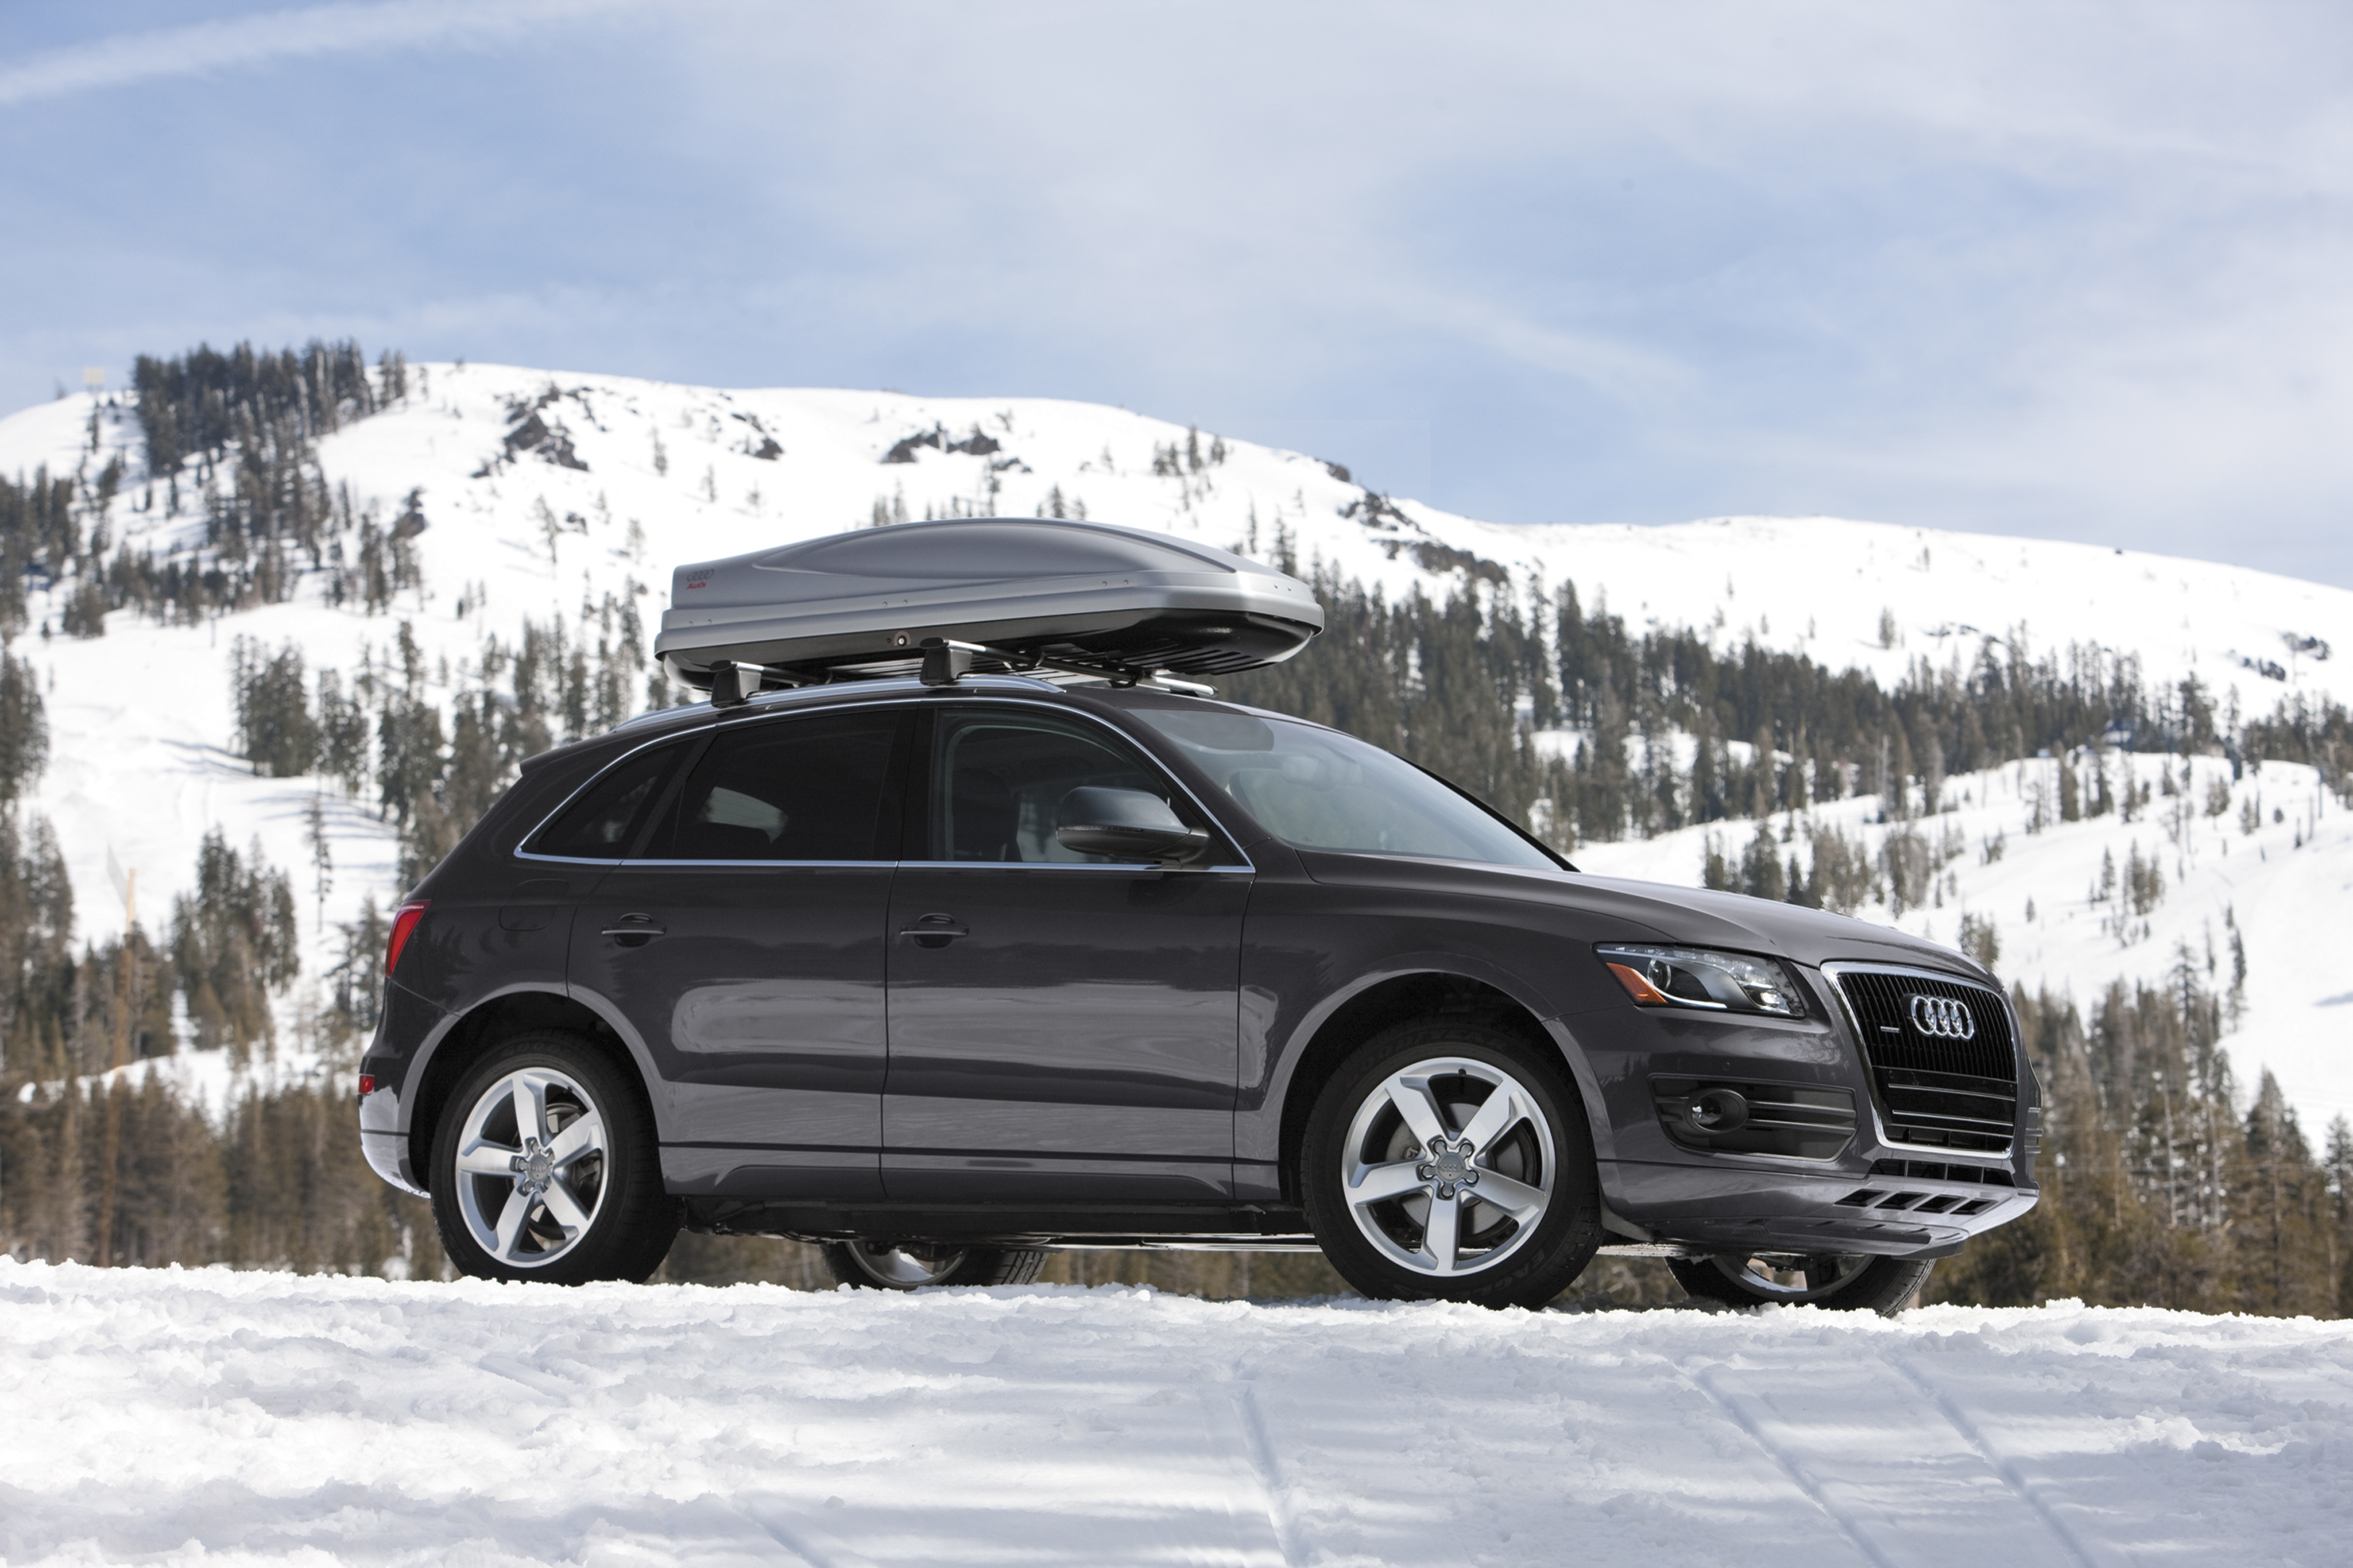 Audi Q5 Winter Wheels Amp Tyres The Best Way To Keep Your